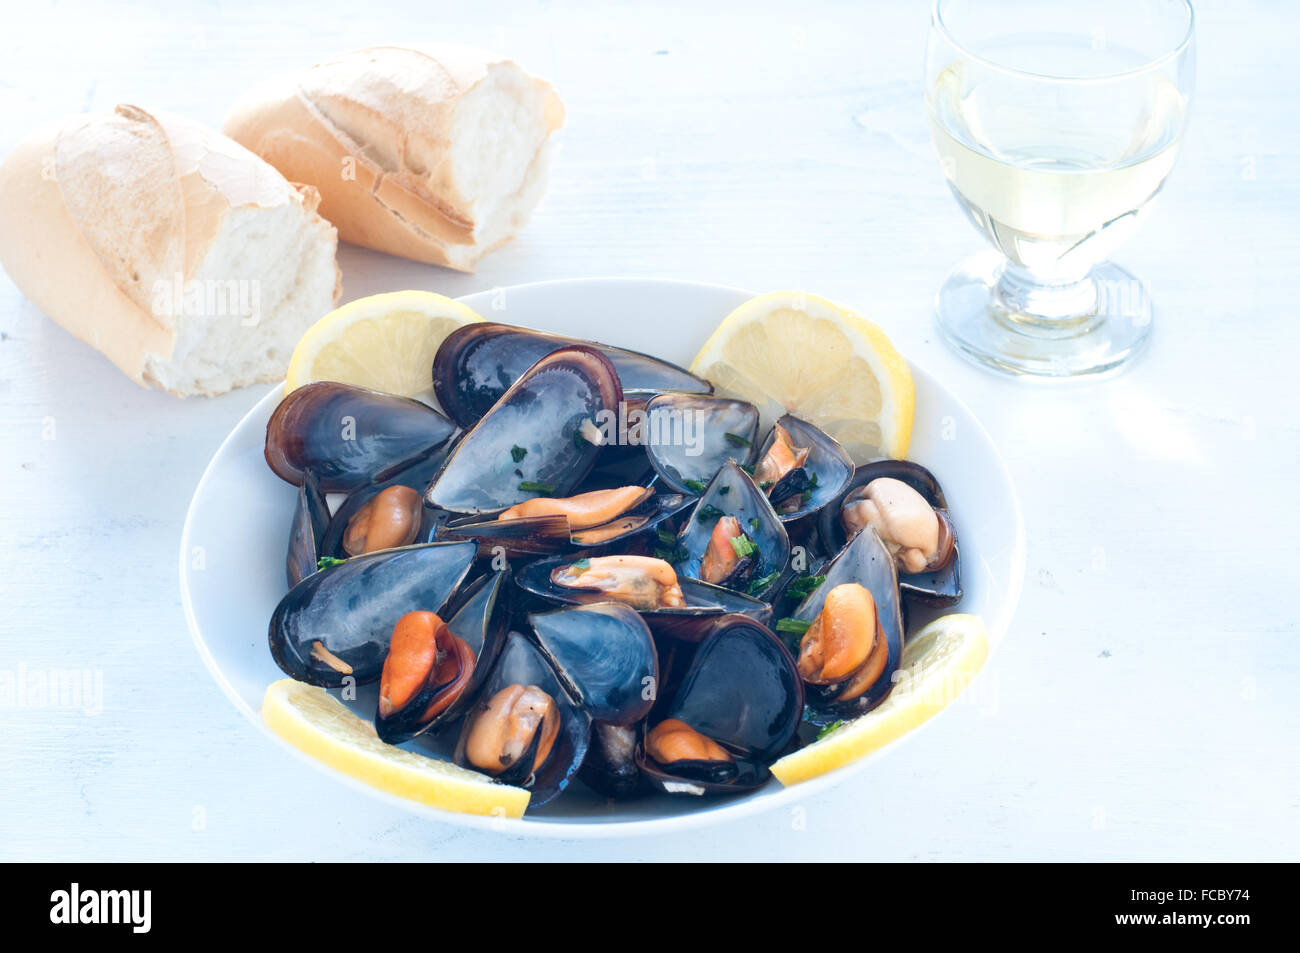 Cooked mussels marinara with tomato, garlic and olive oil, italy - Stock Image